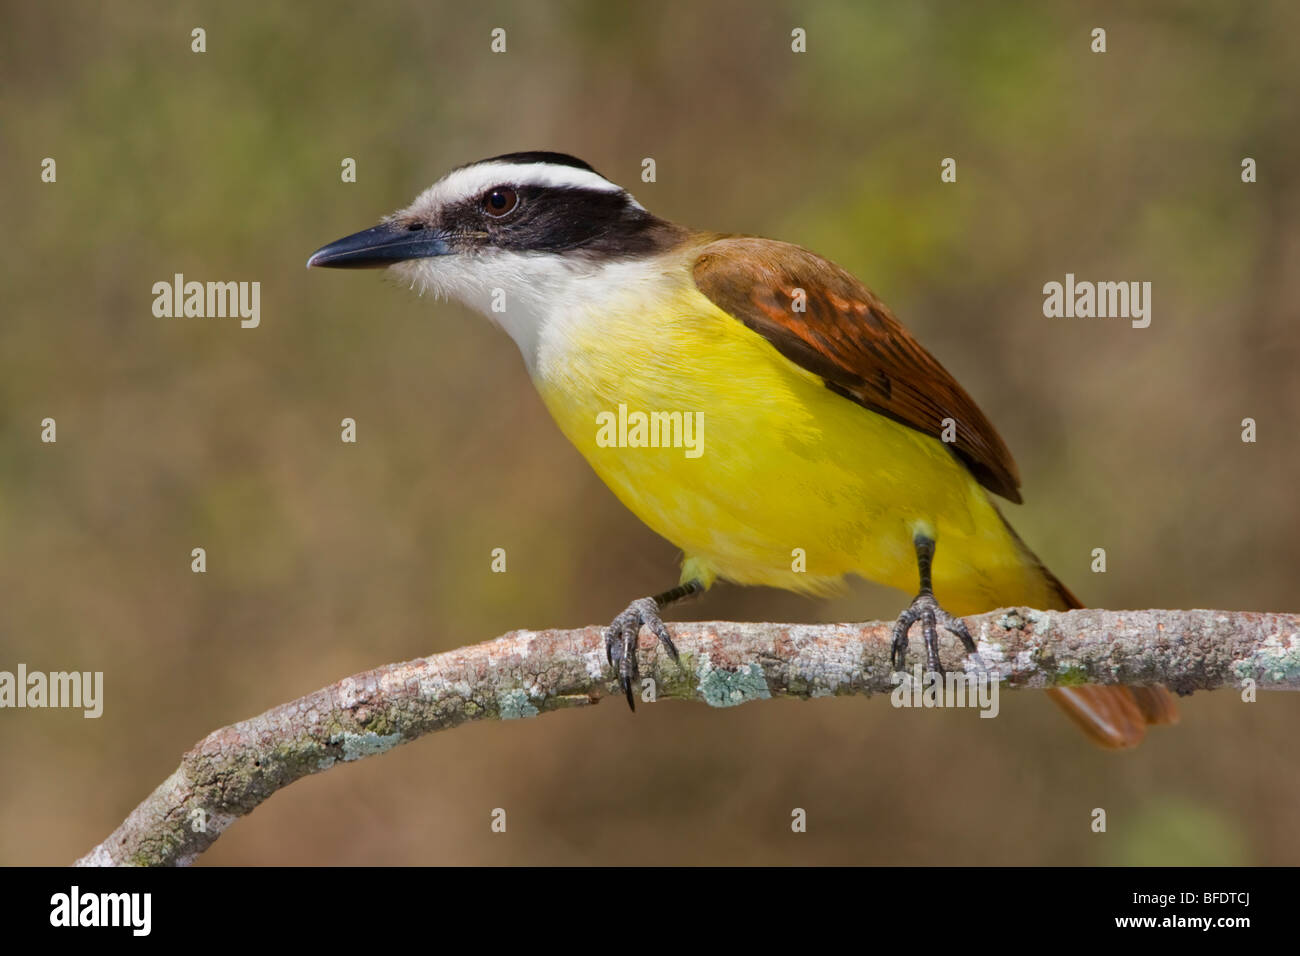 Great Kiskadee (Pitangus sulphuratus) perched on a branch in the Rio Grande Valley of Texas, USA - Stock Image